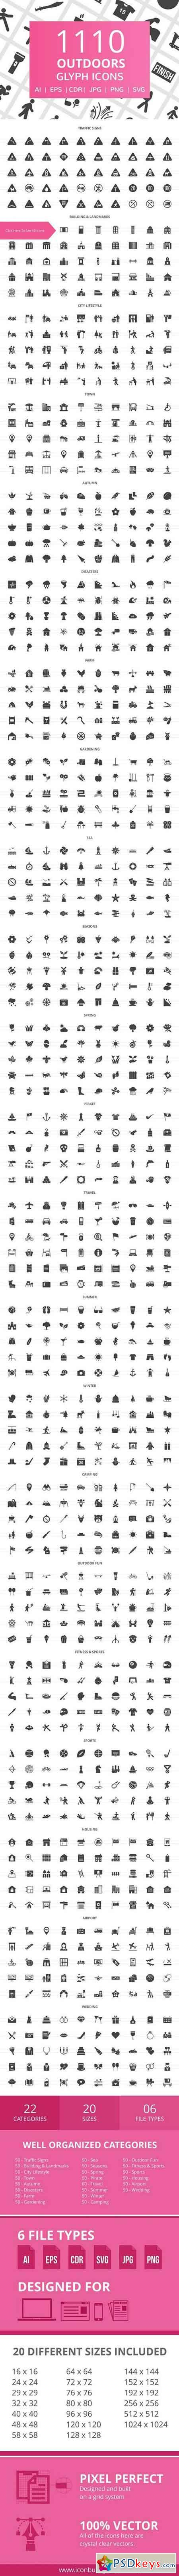 1110 Outdoors Glyph Icons 2041477